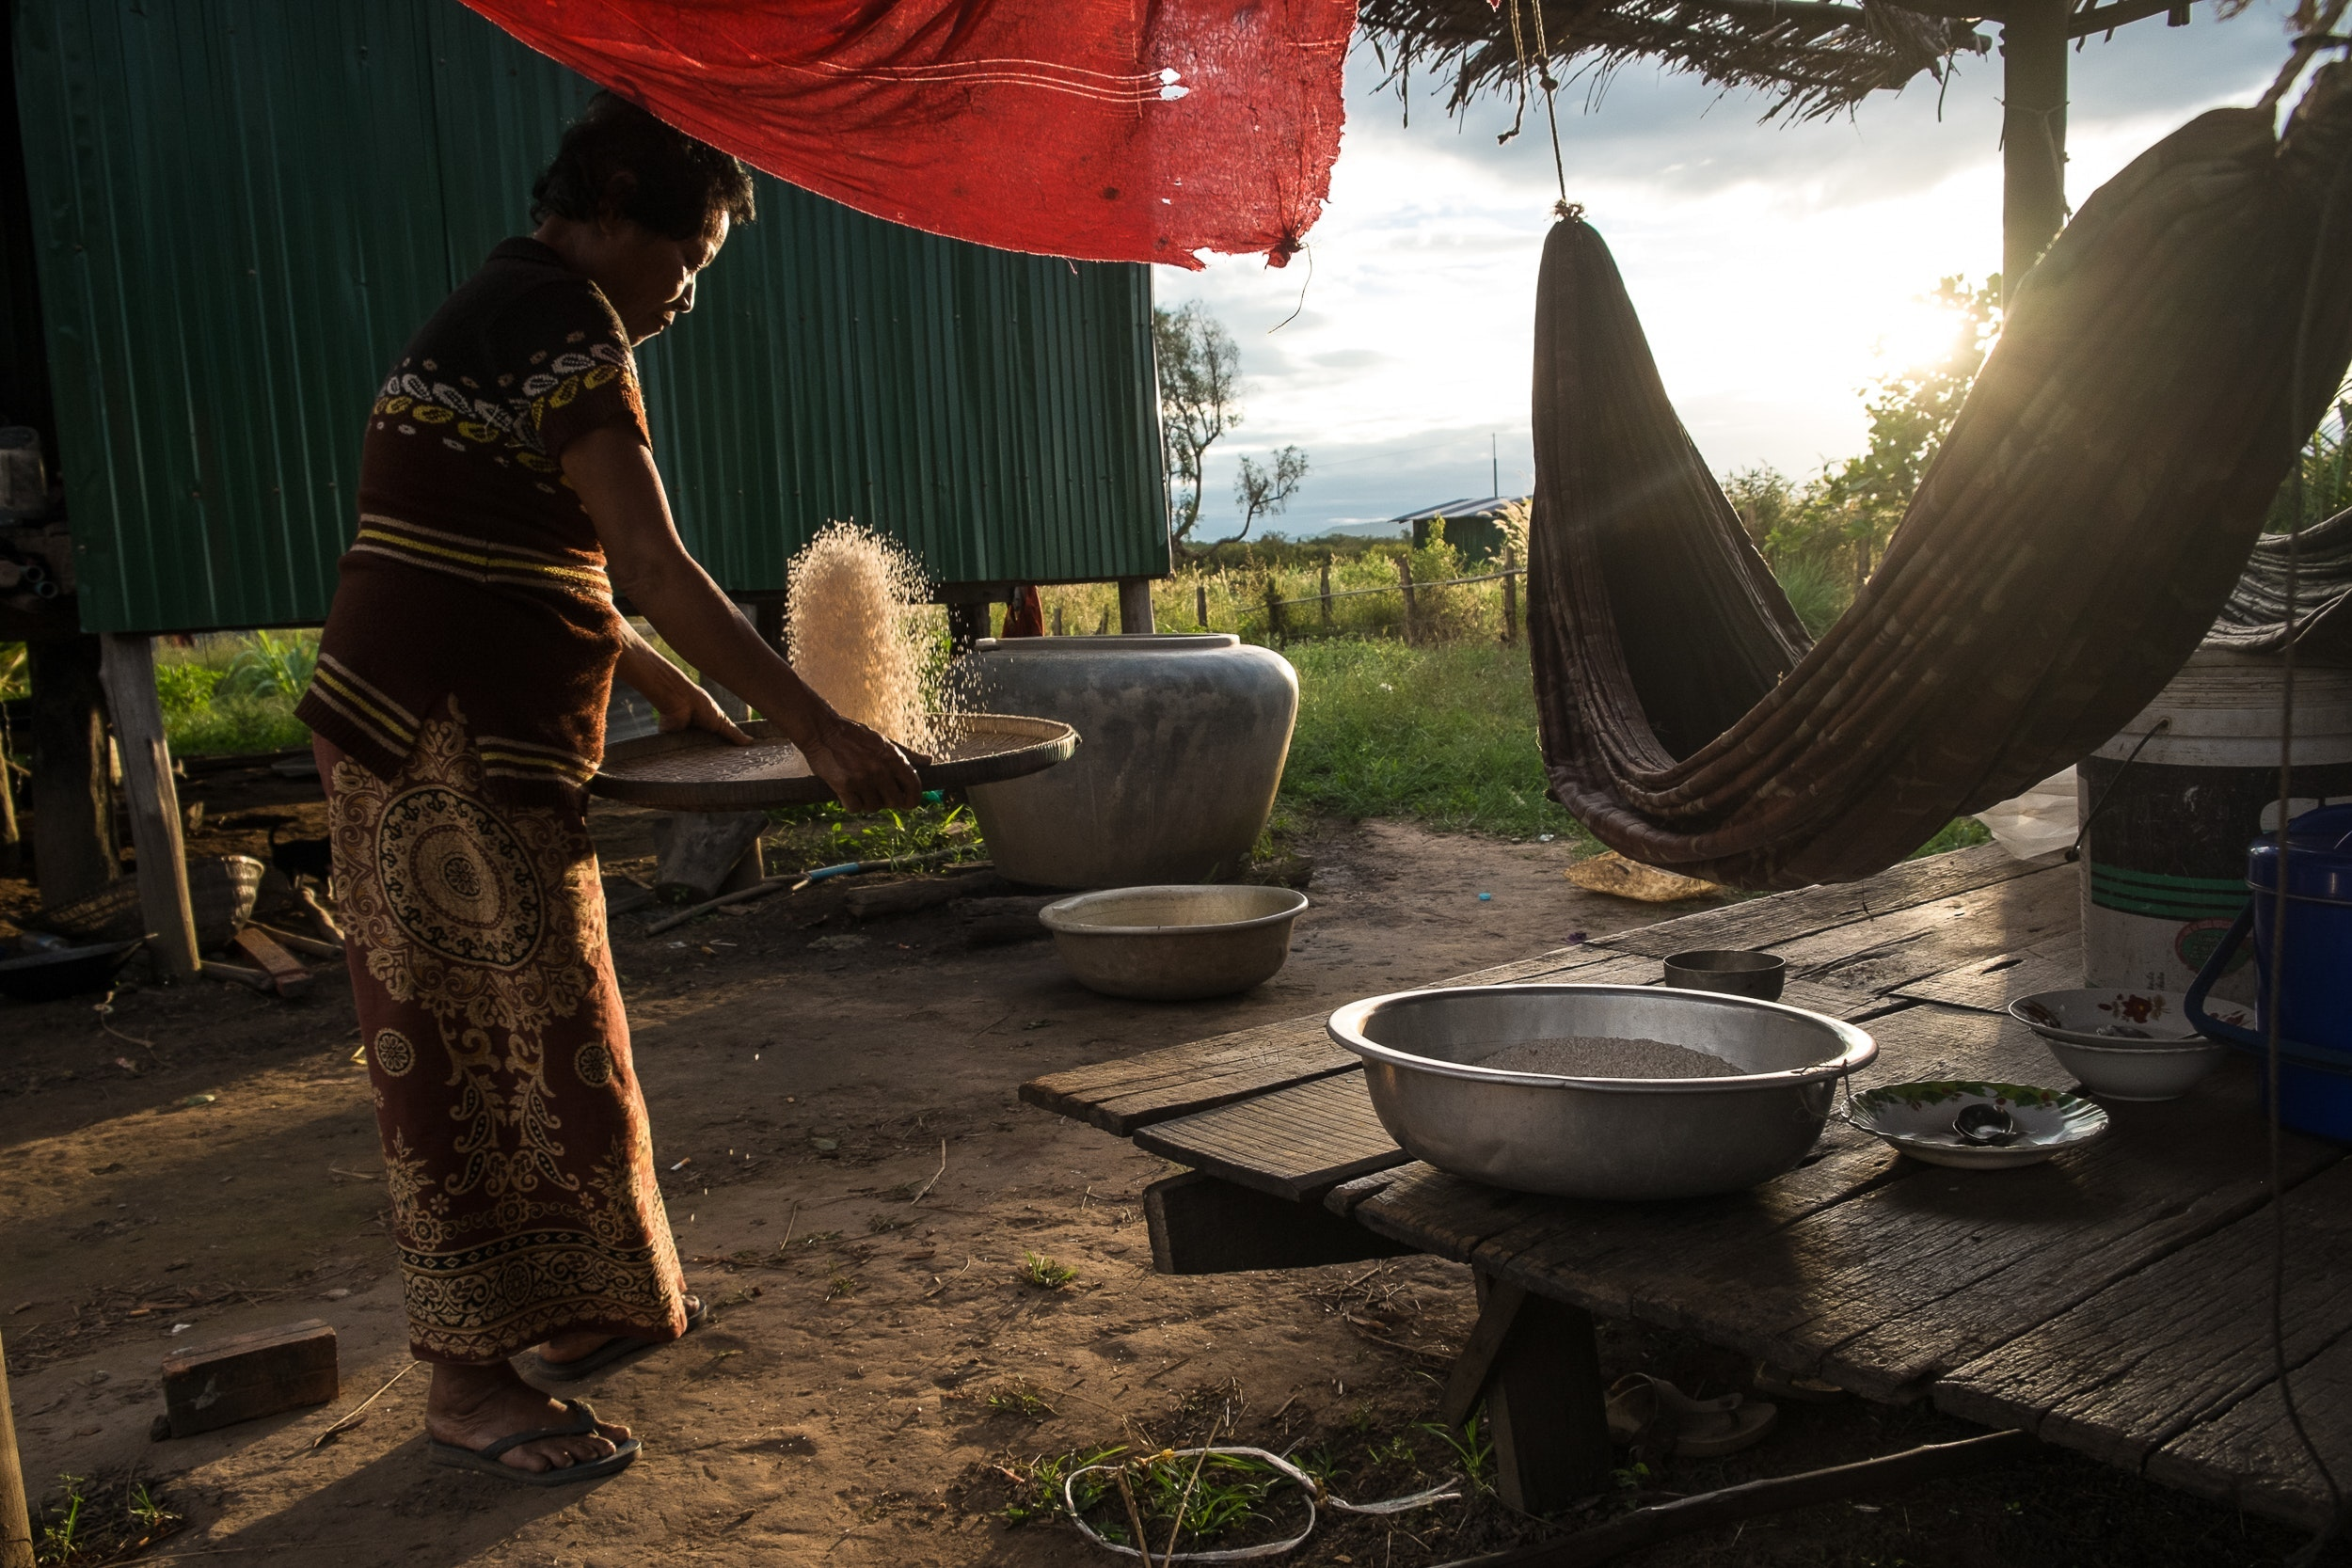 Drying rice in the village of Chi Phat